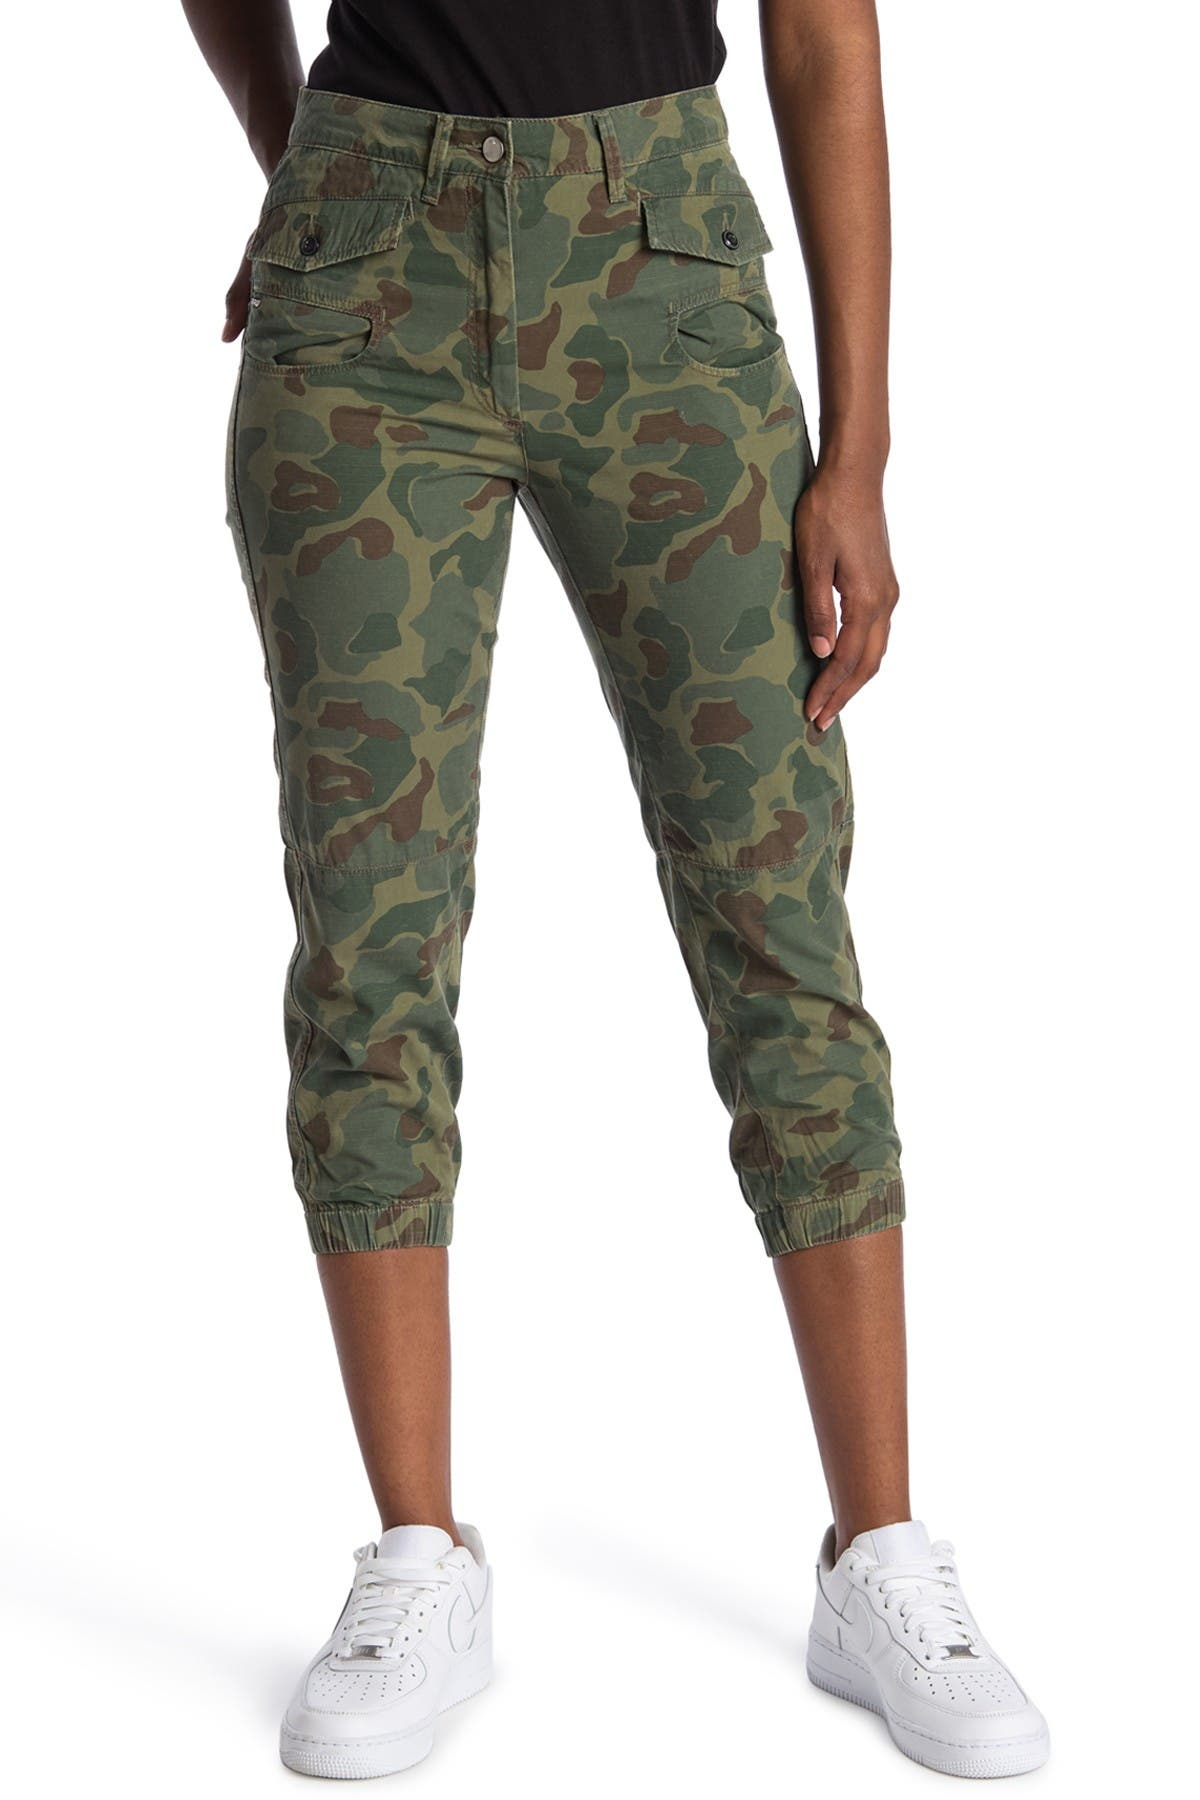 Image of G-STAR RAW Army Camo Cropped Pants